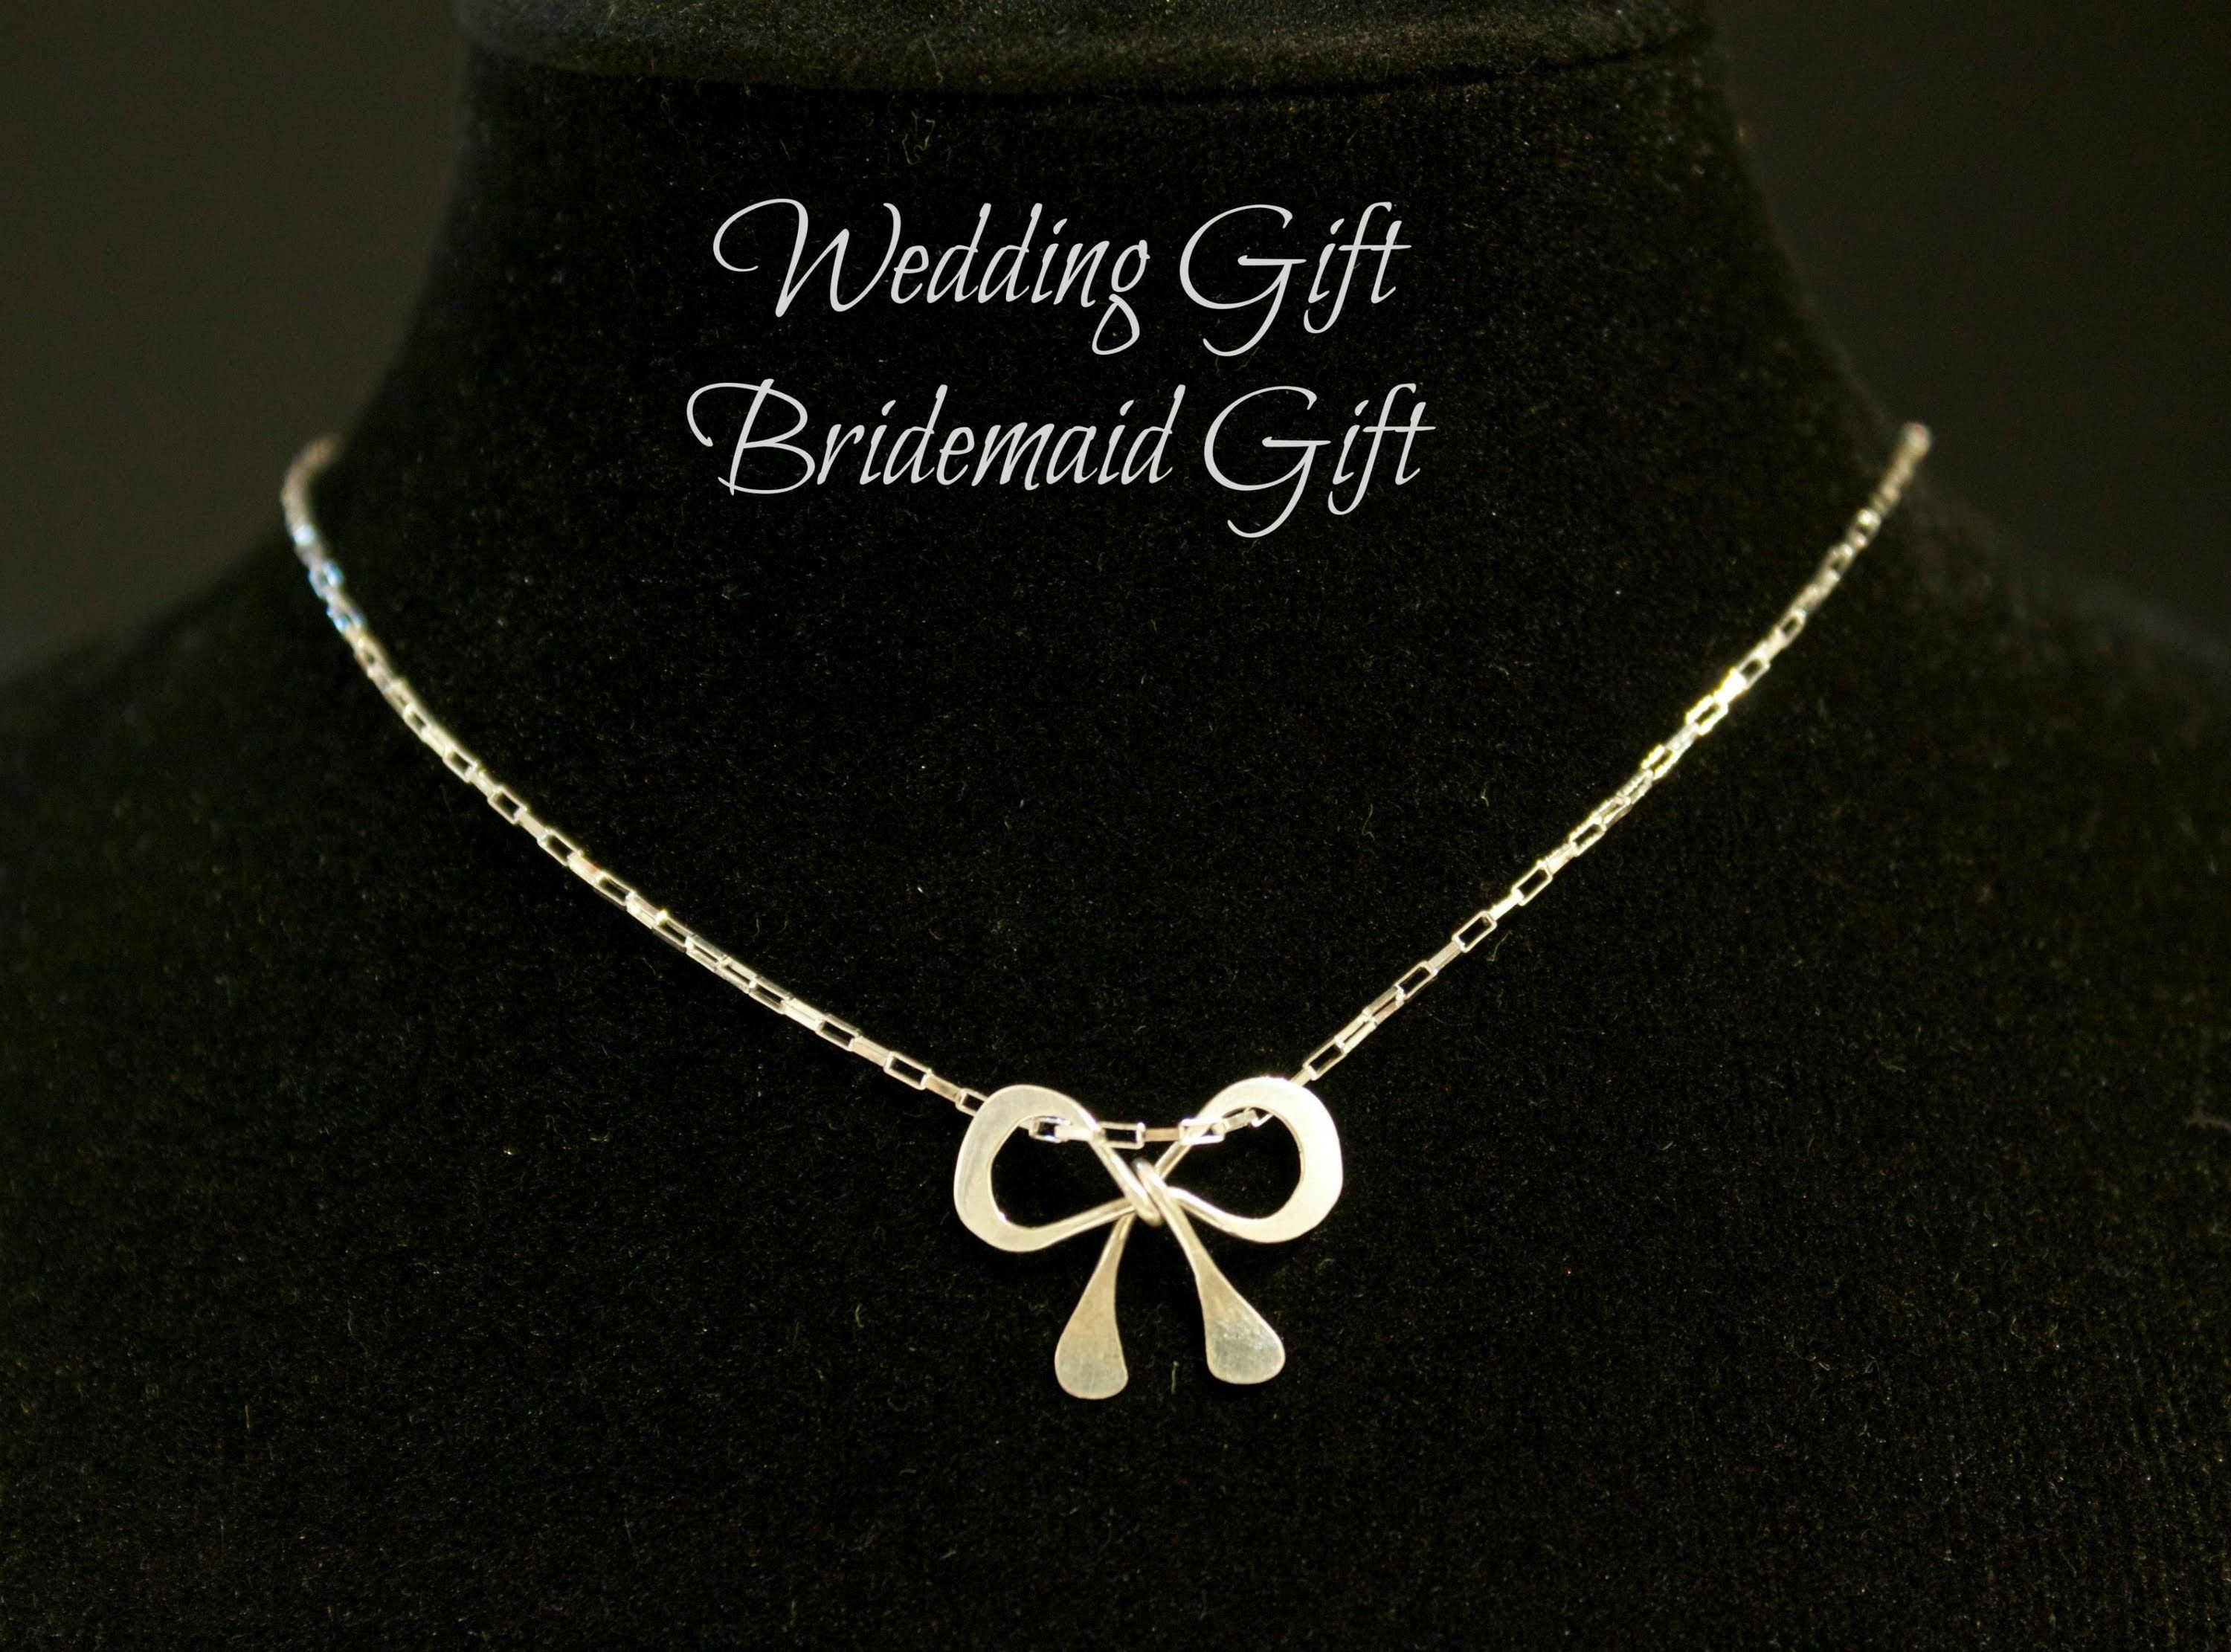 How To Make Your Own Wedding Gifts Bridemaids Gifts Parties Gifts